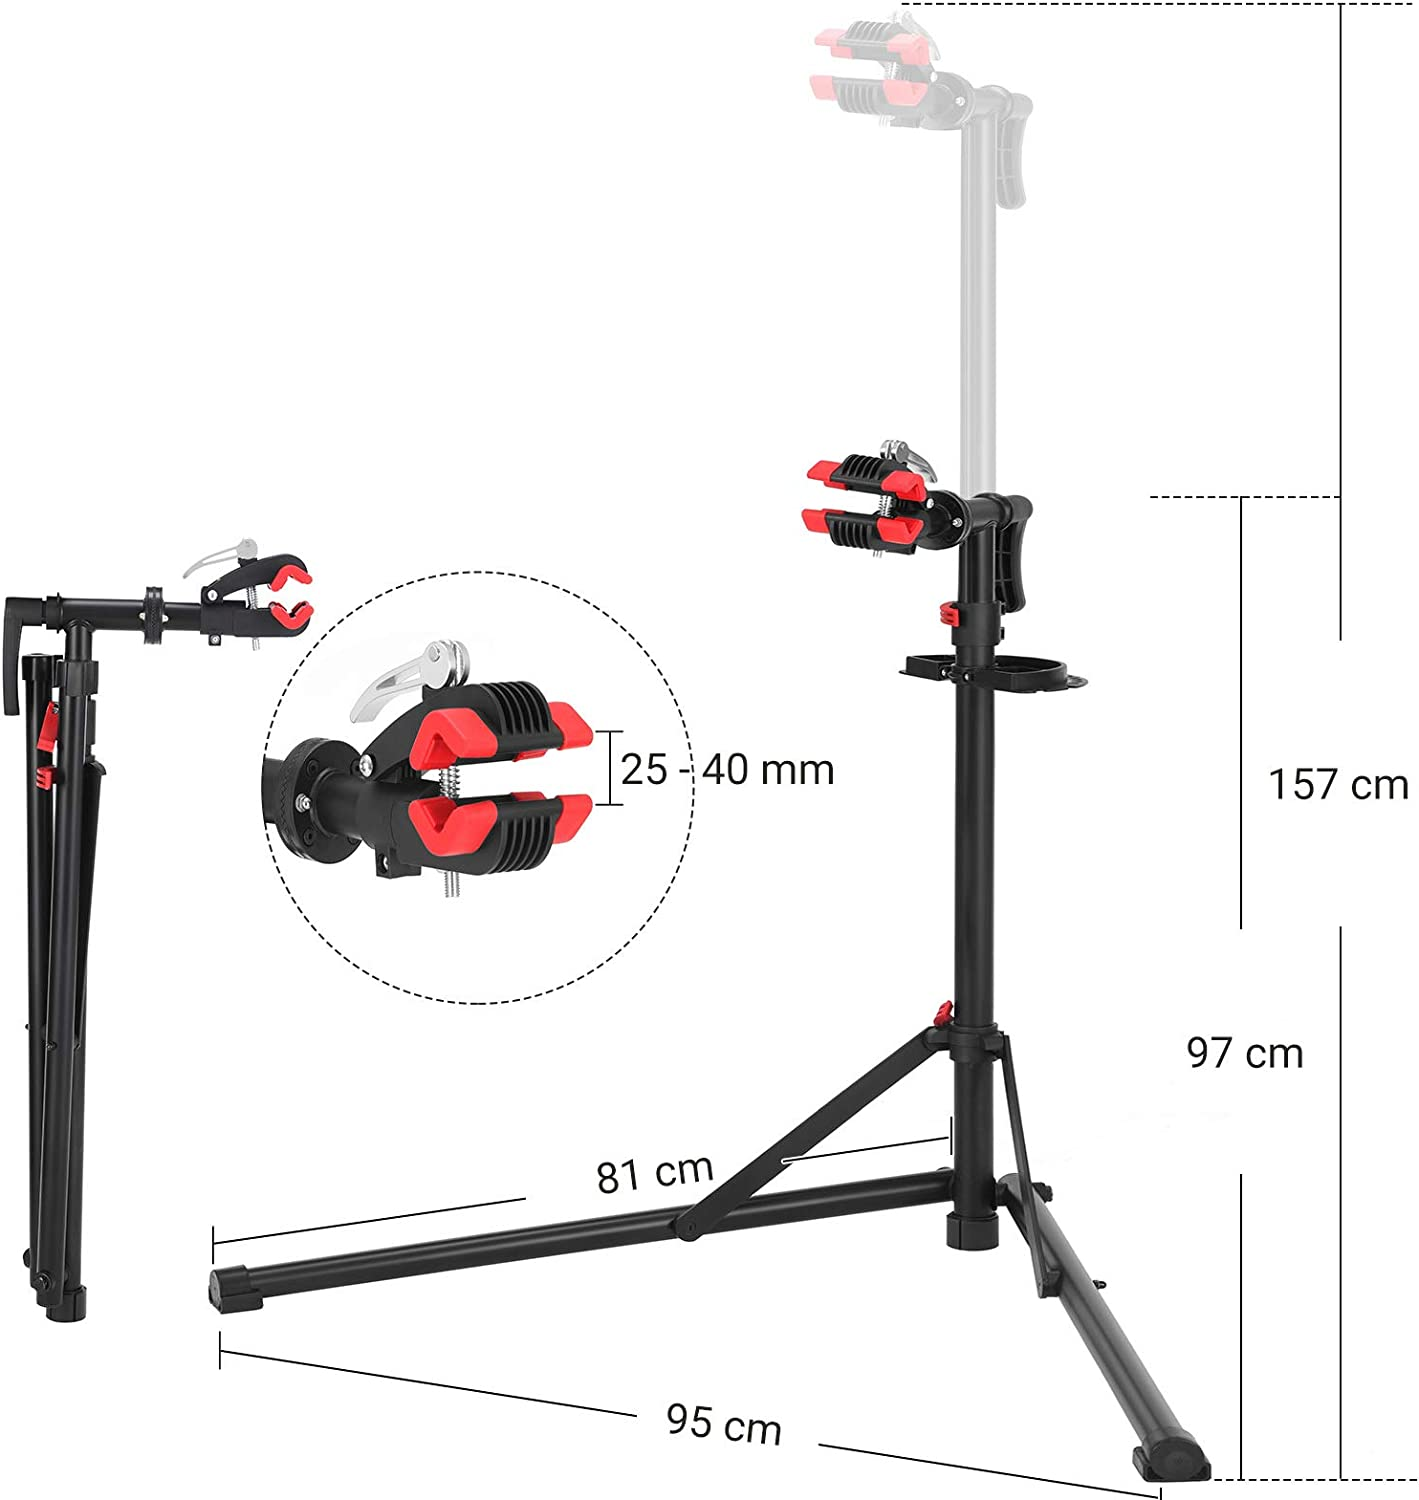 Welded Steel Head with 360 Degree Adjustment Clamp Quick Release Handles SONGMICS Bike Repair Stand Rack Black SBR07B Heavy-Duty and Sturdy Maintenance Stand with 2 Legs